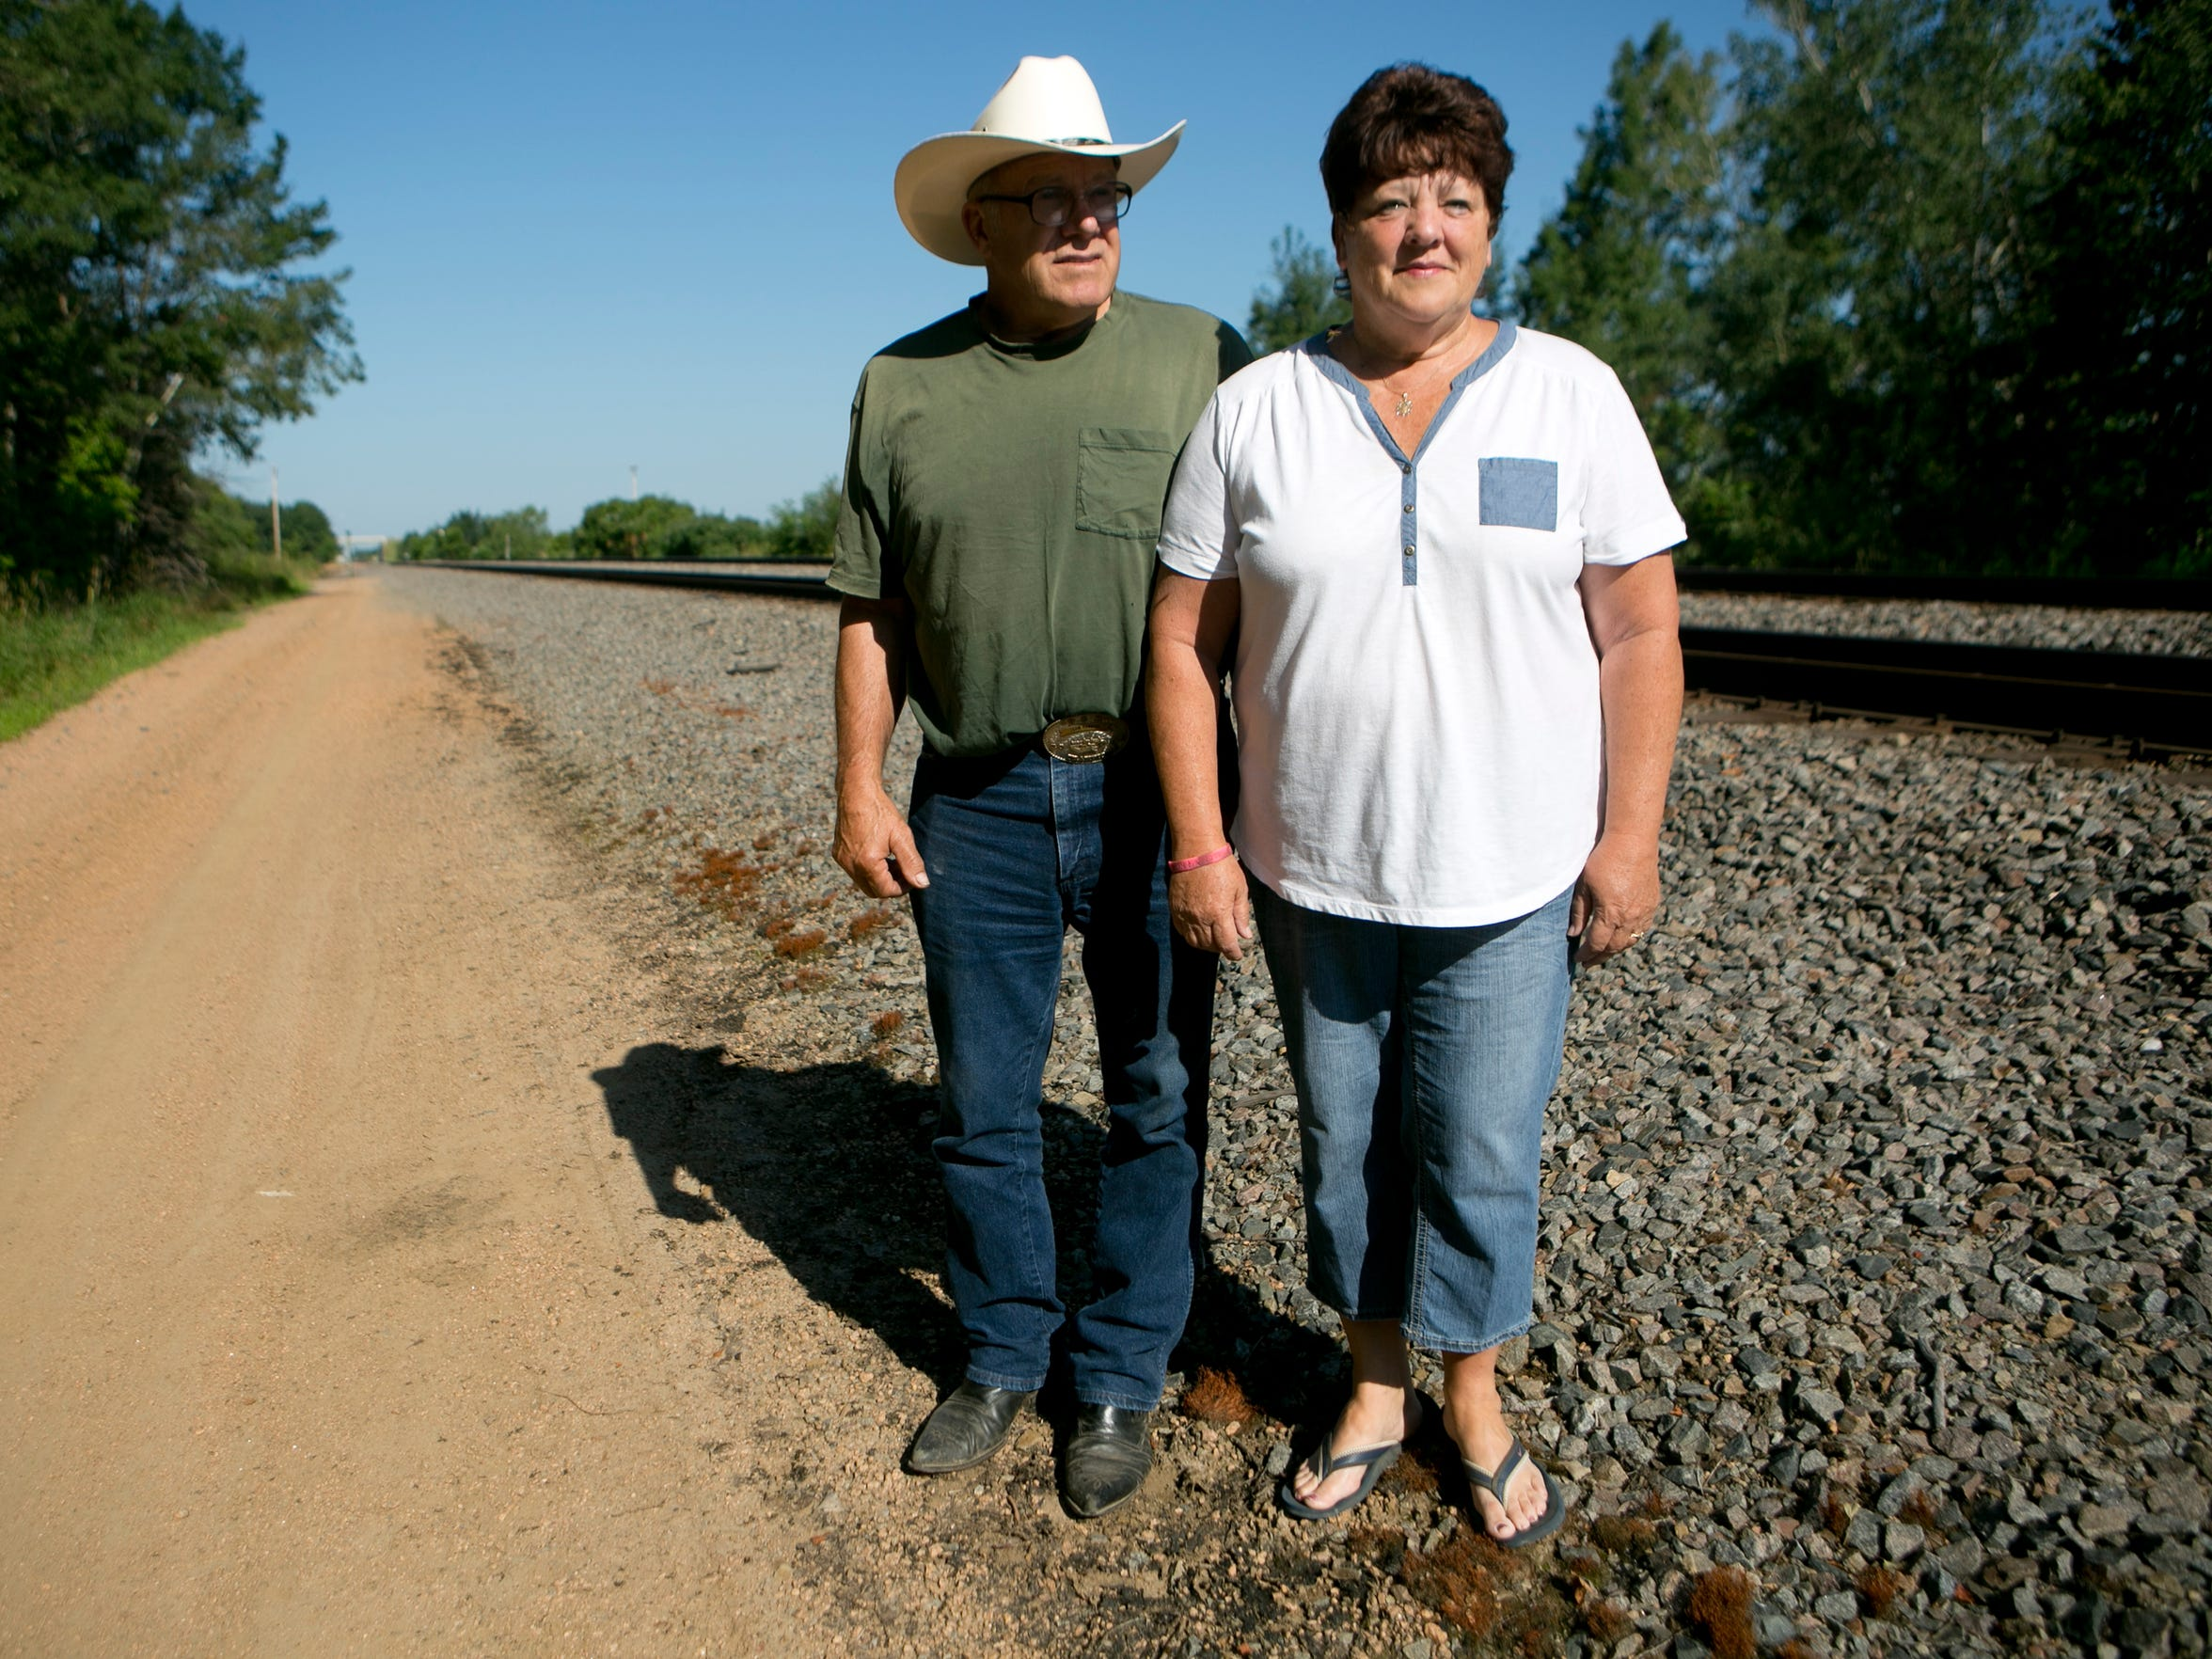 Jim and Barb Vitort of Junction City say trains have